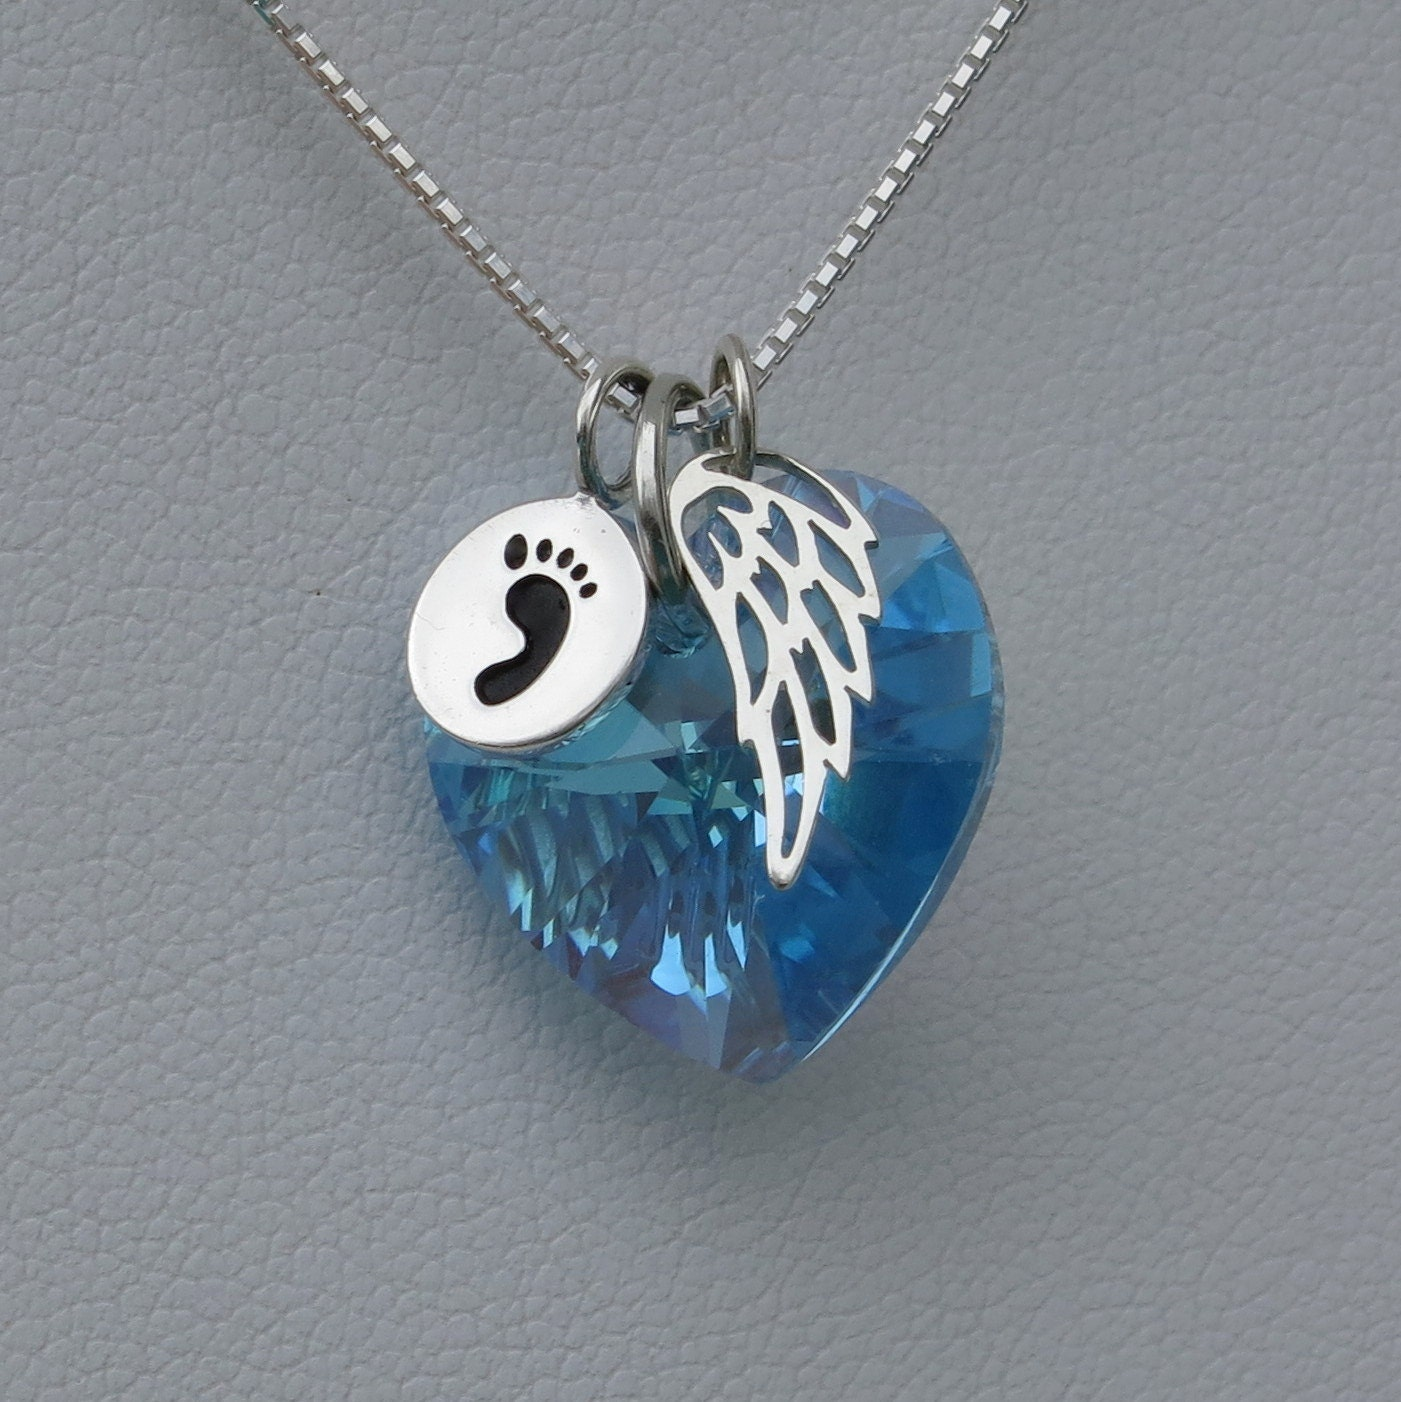 Miscarry gift miscarry necklace miscarry jewelry march gallery photo gallery photo aloadofball Images